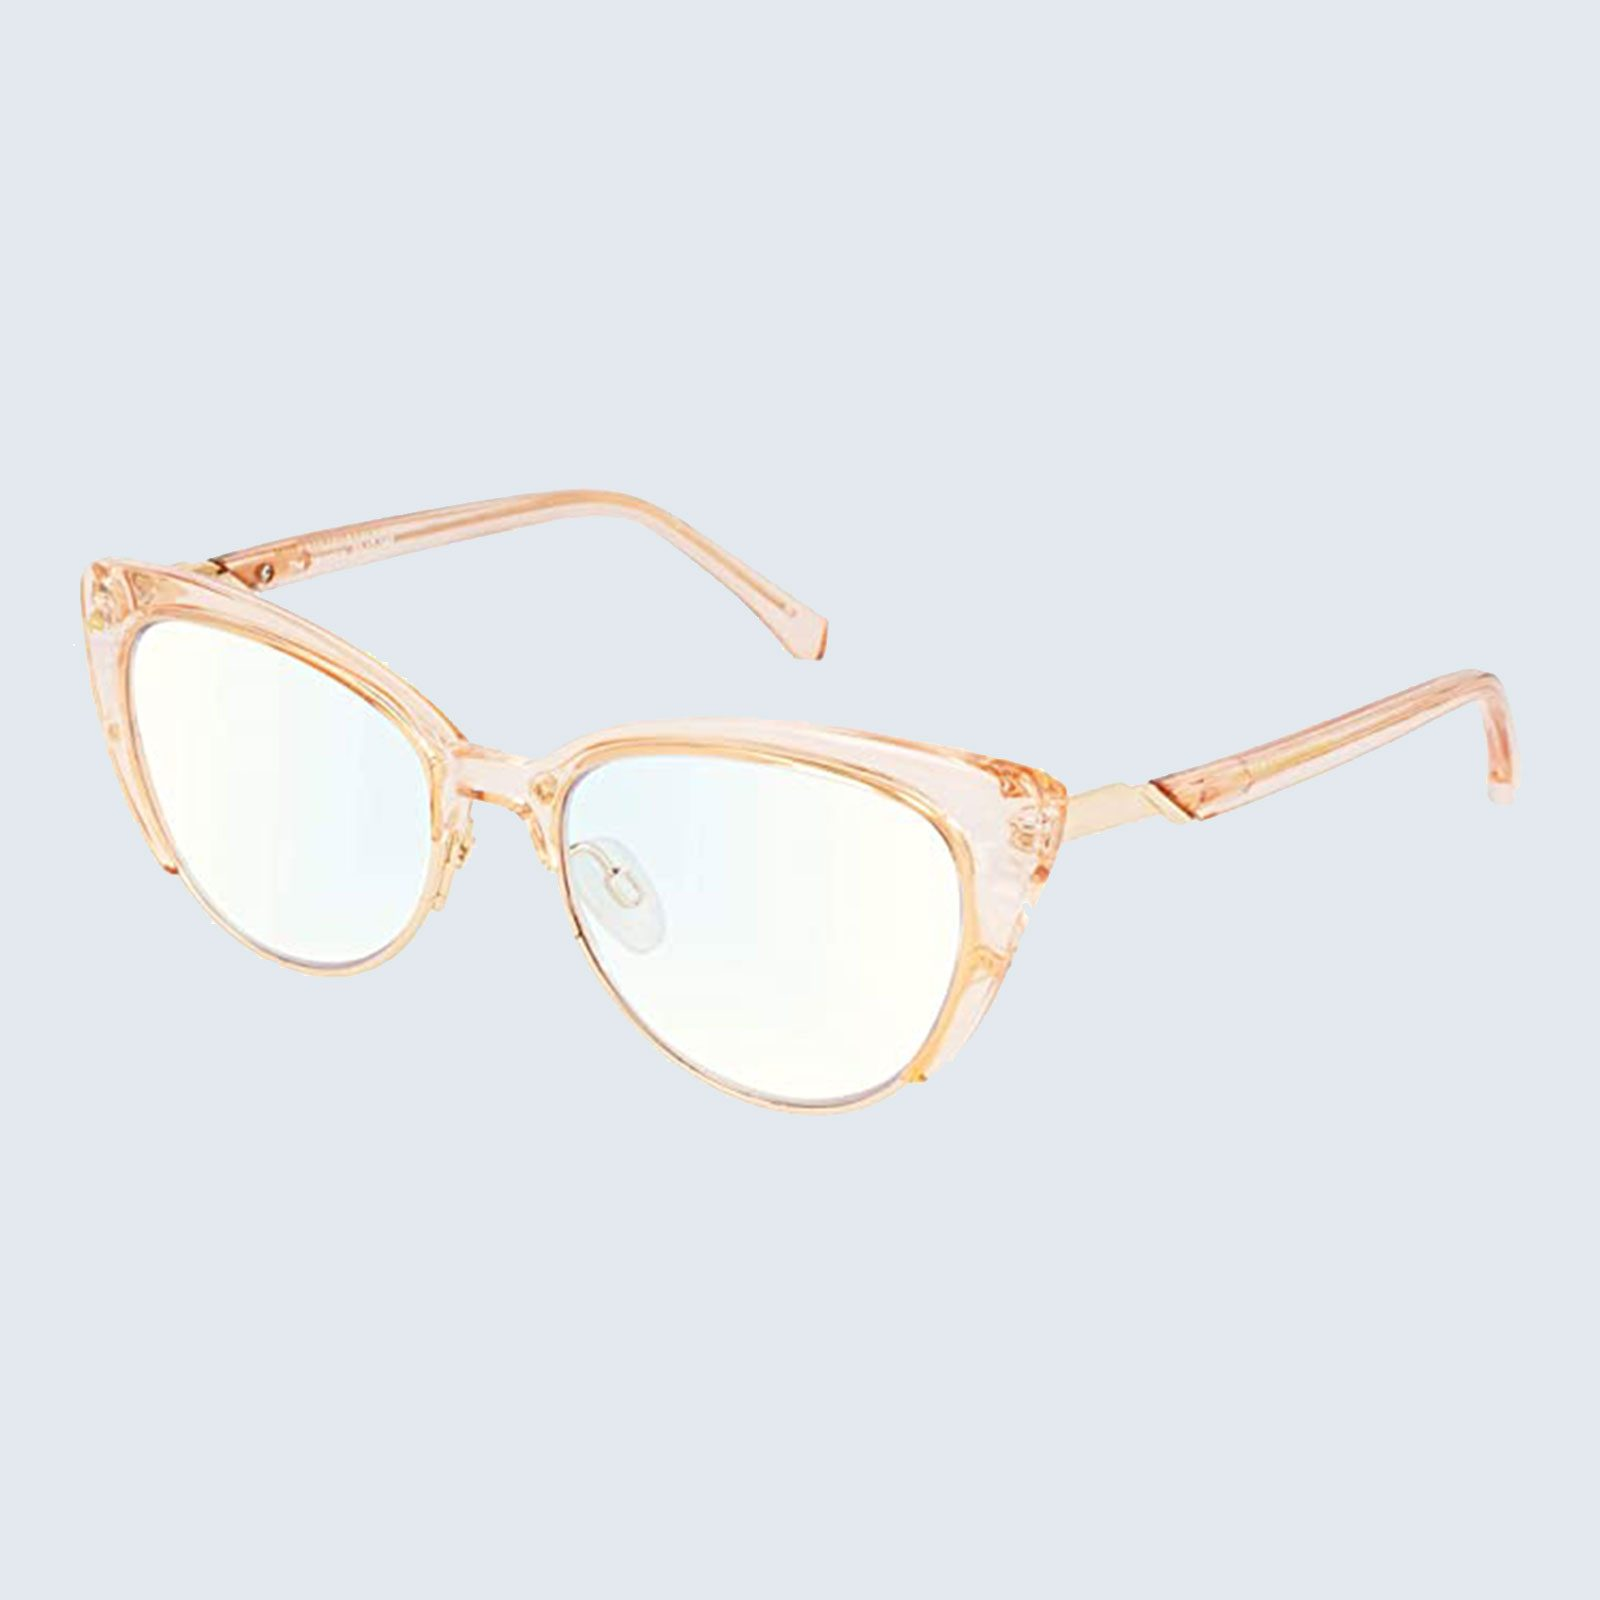 For the work-from-home mom: Privé Revaux The Veronica Glasses